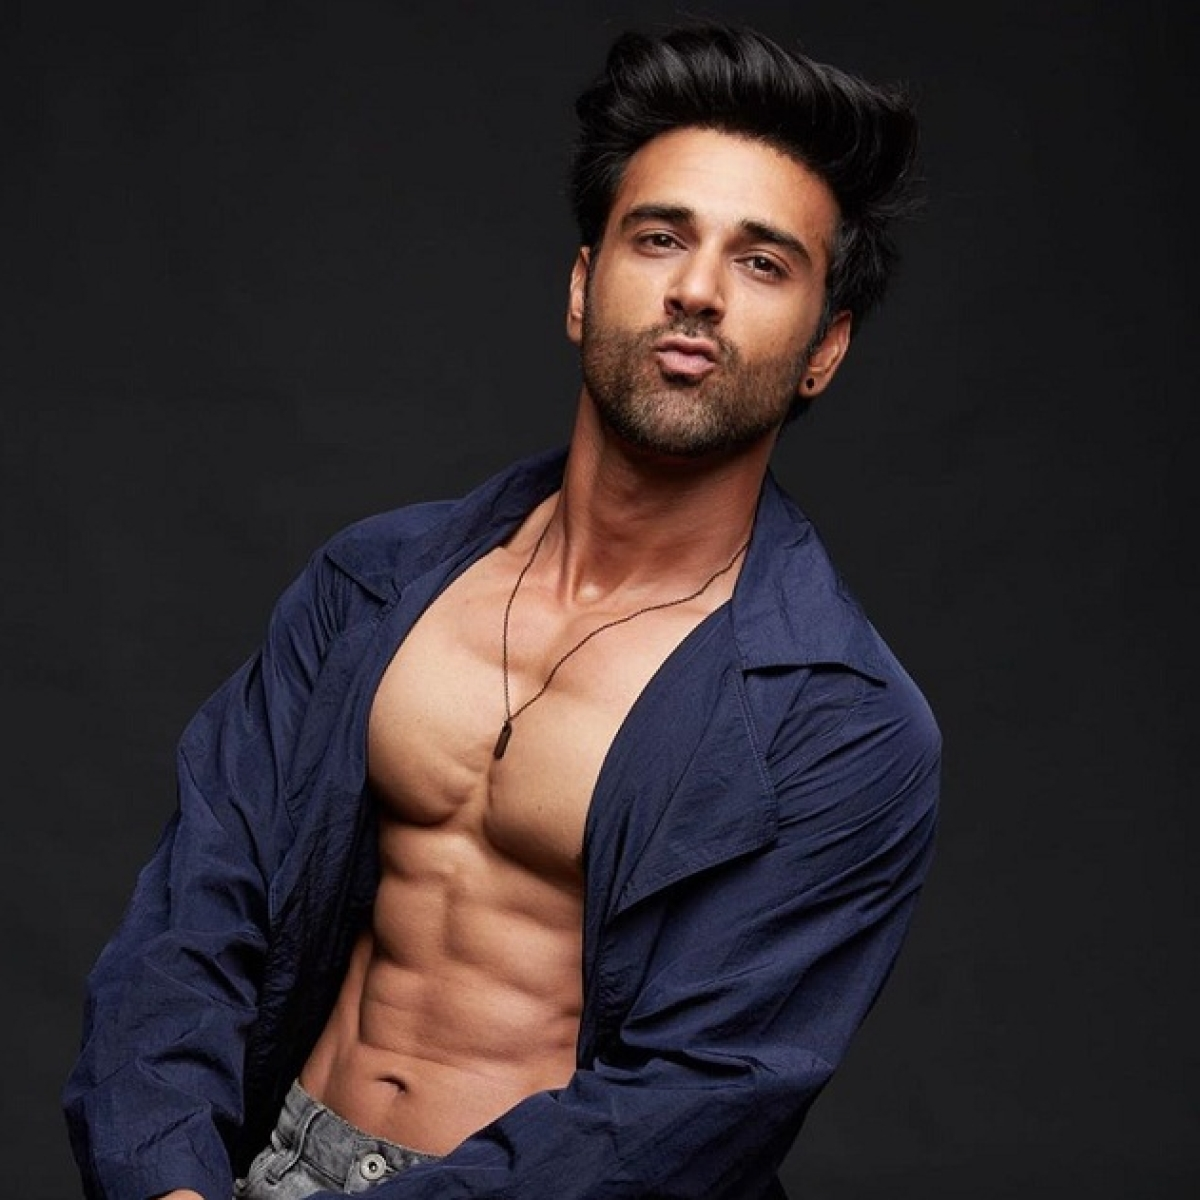 'No one has seen me in such a character,' Says Pulkit Samrat about 'Taish'